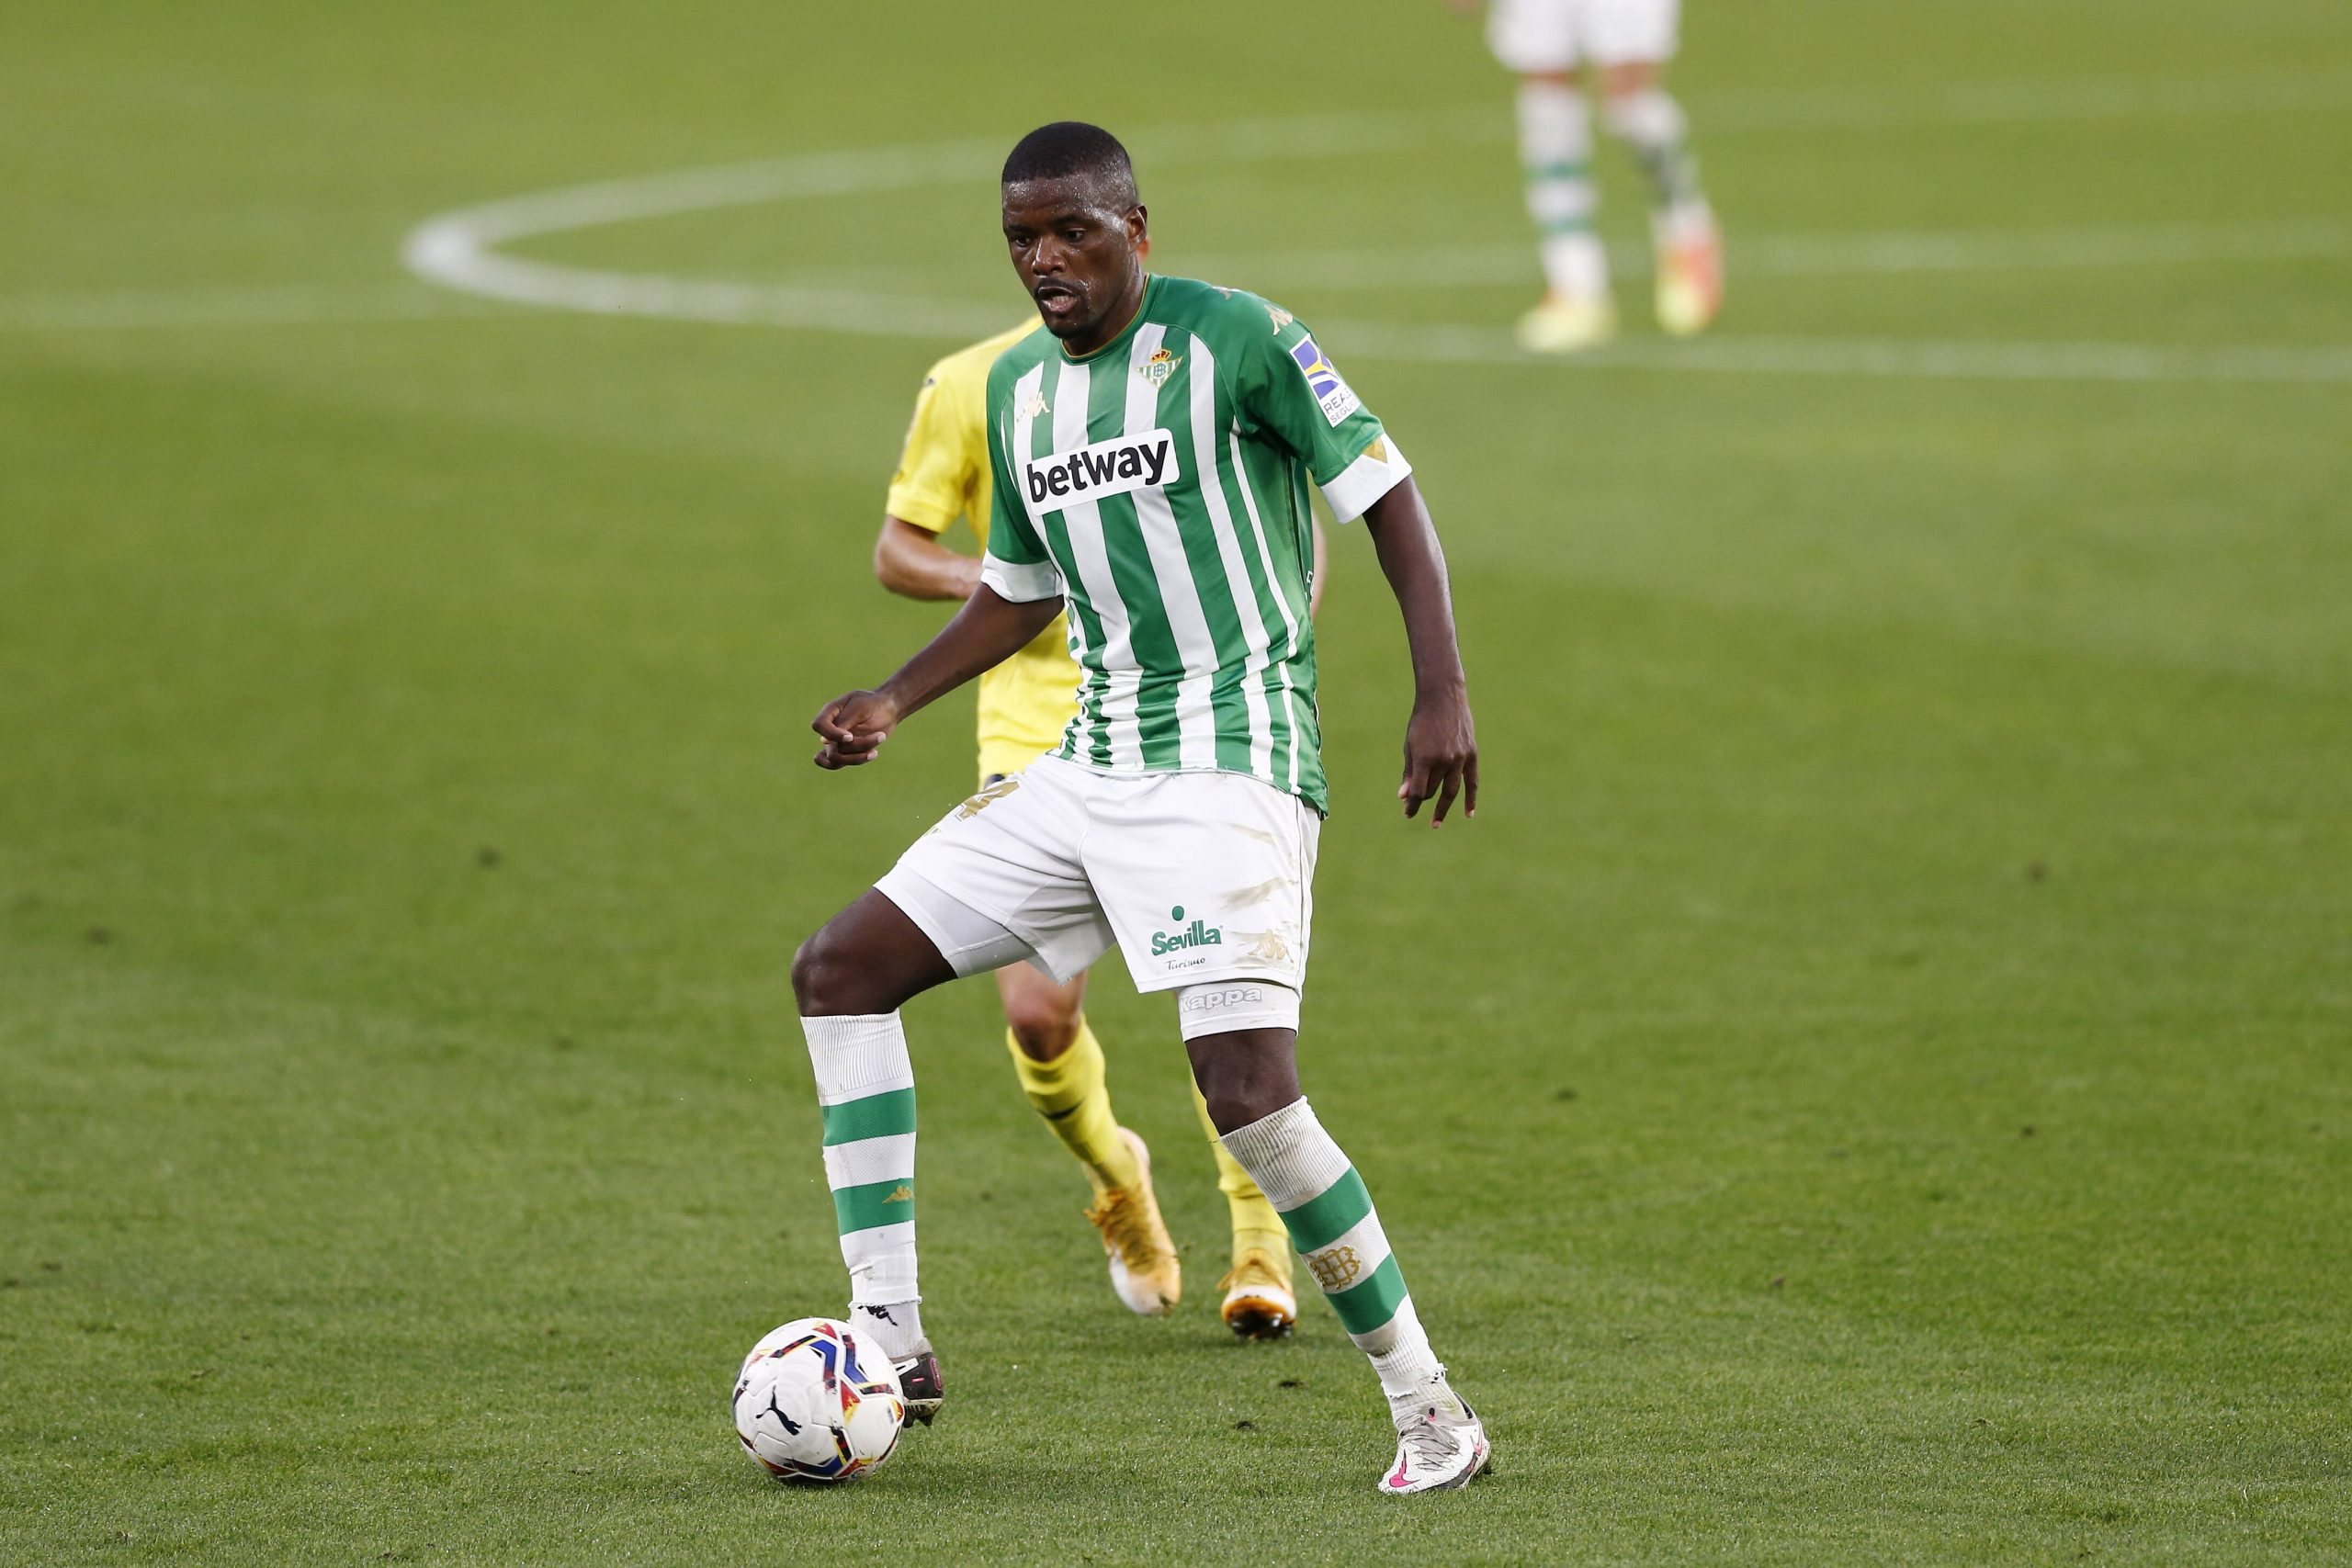 William Carvalho vers le Benfica ?